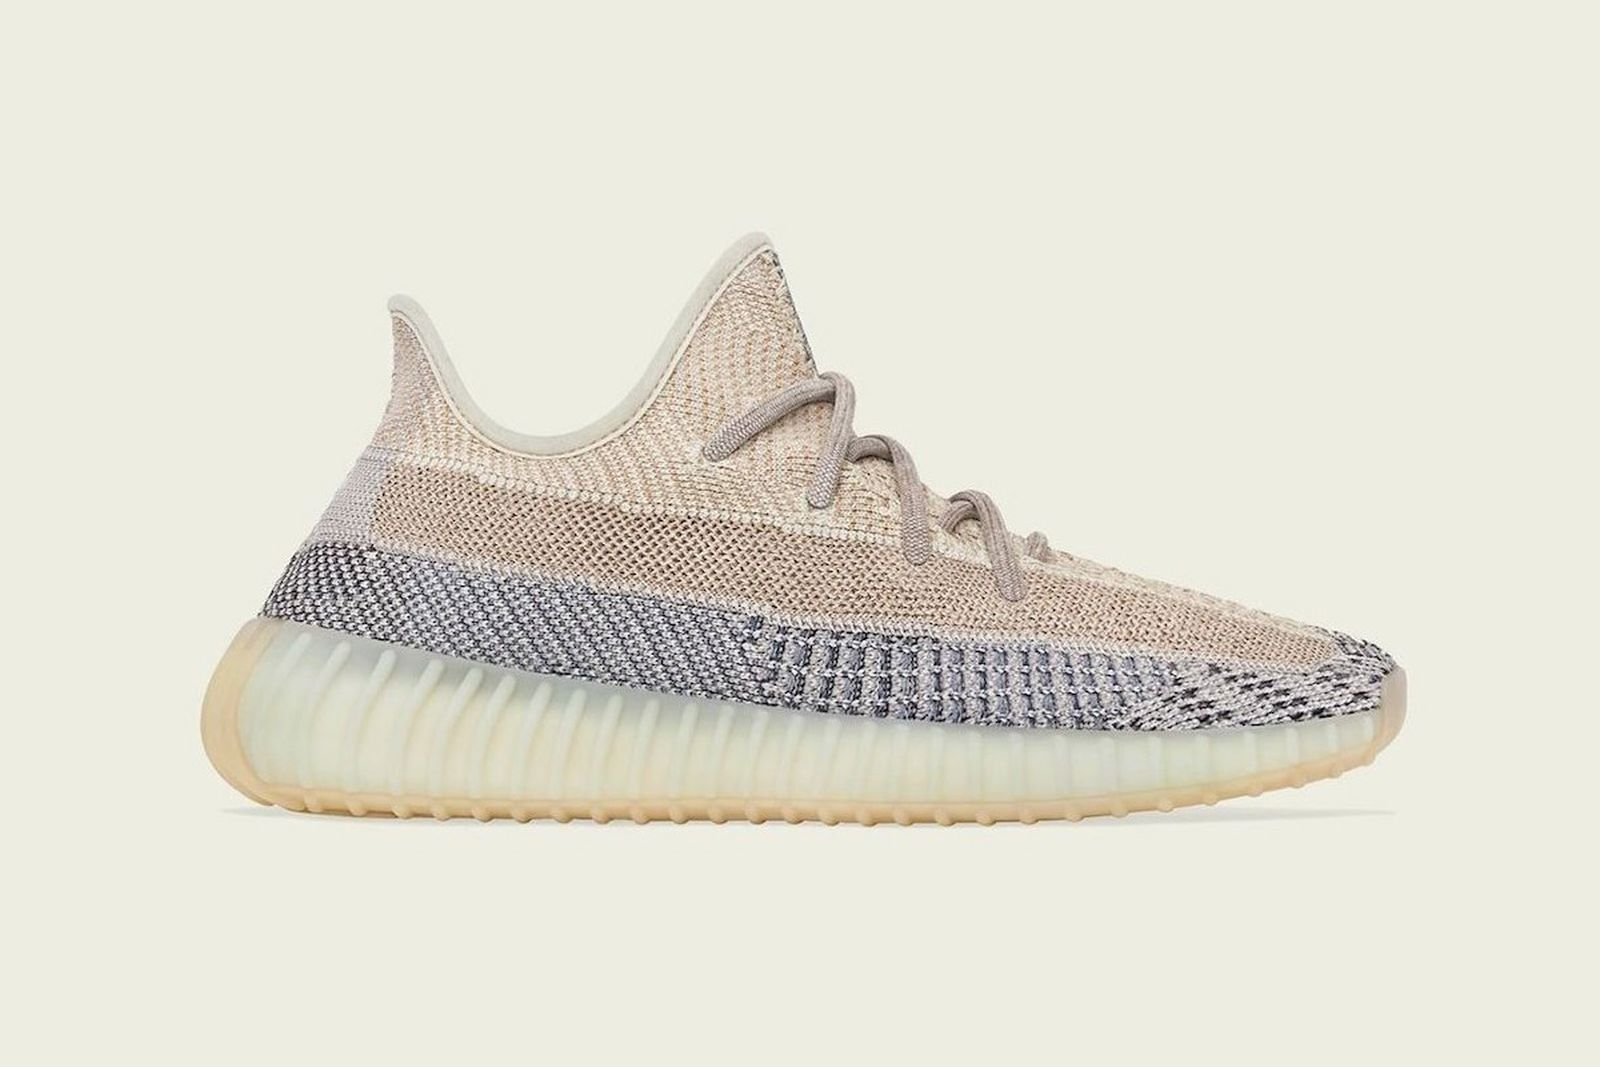 adidas-yeezy-spring-summer-2021-releases-1